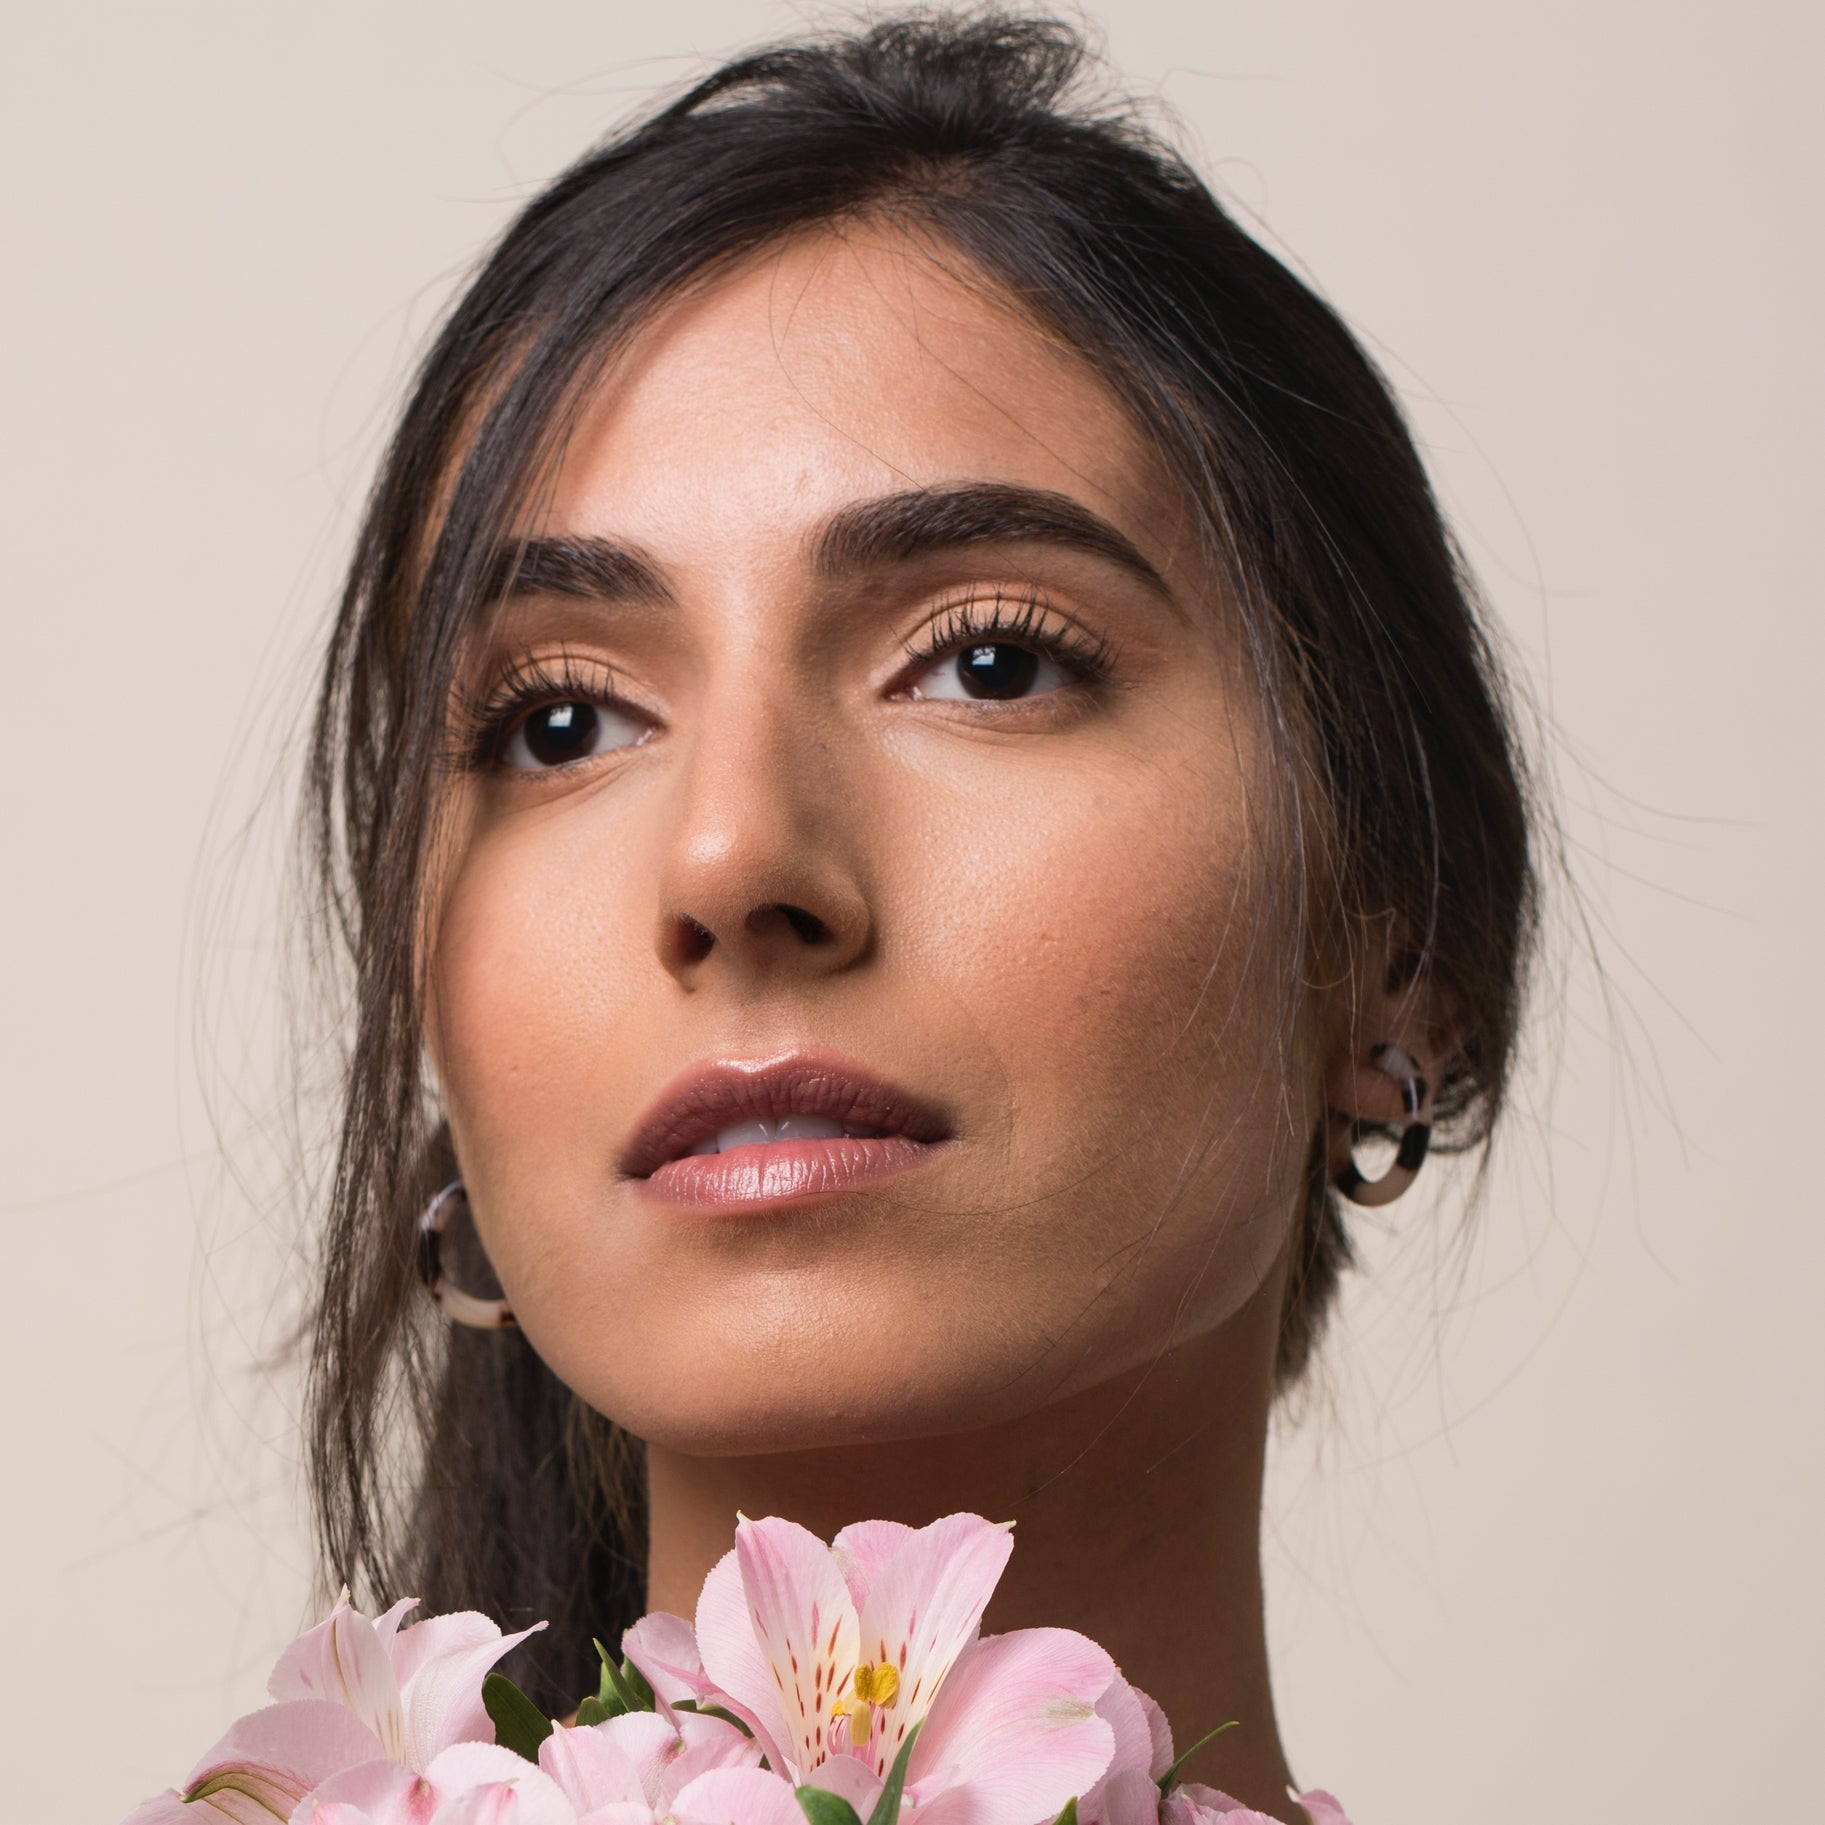 Brunette model facing camera wearing blonde tortoise hoops and holding pink flowers